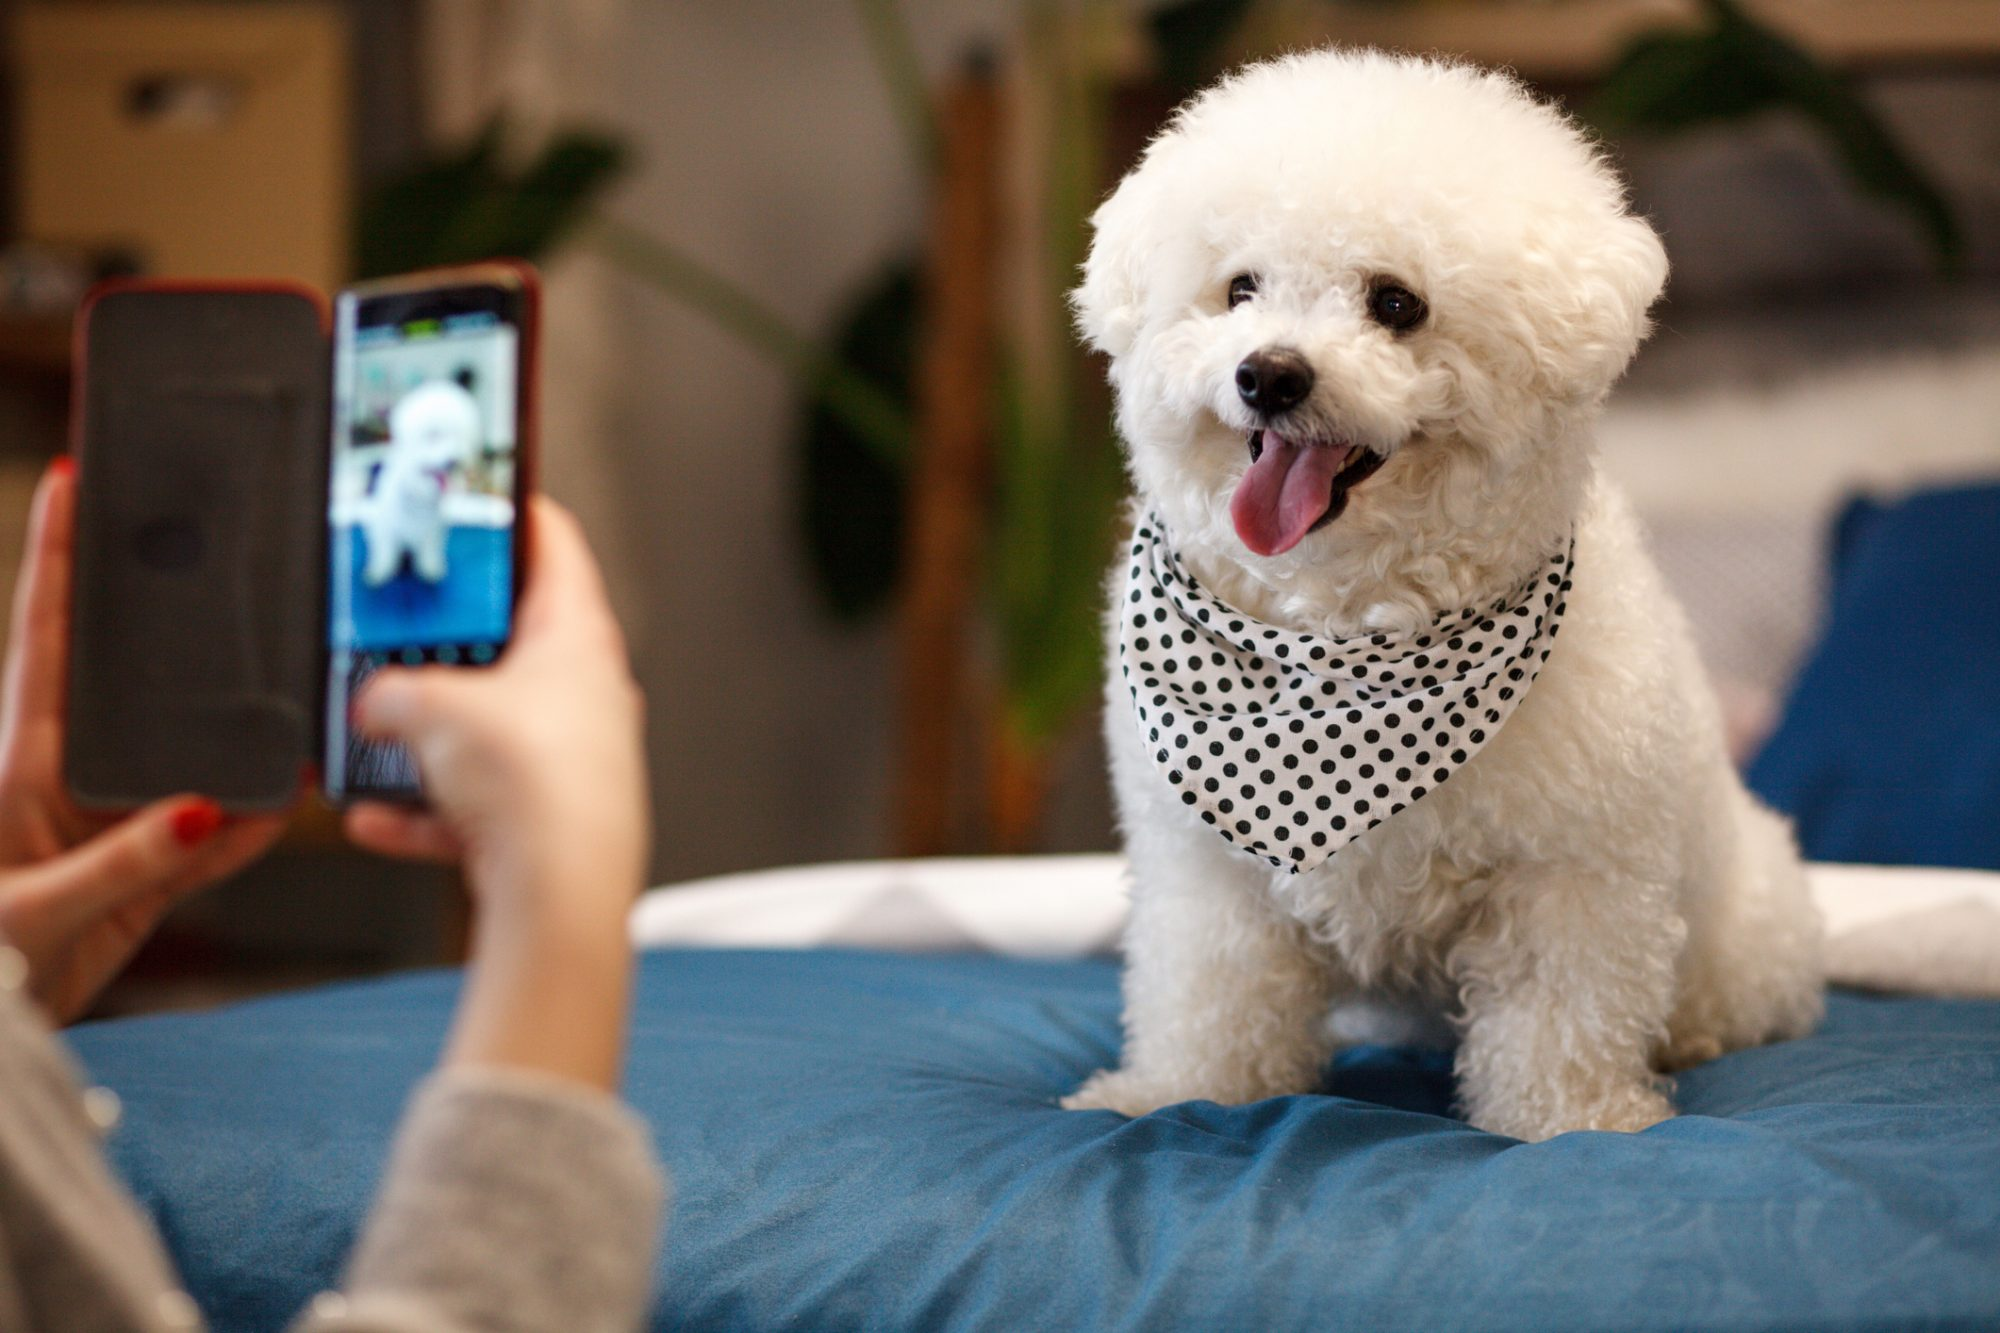 Girl Taking Photo of Bichon Frise